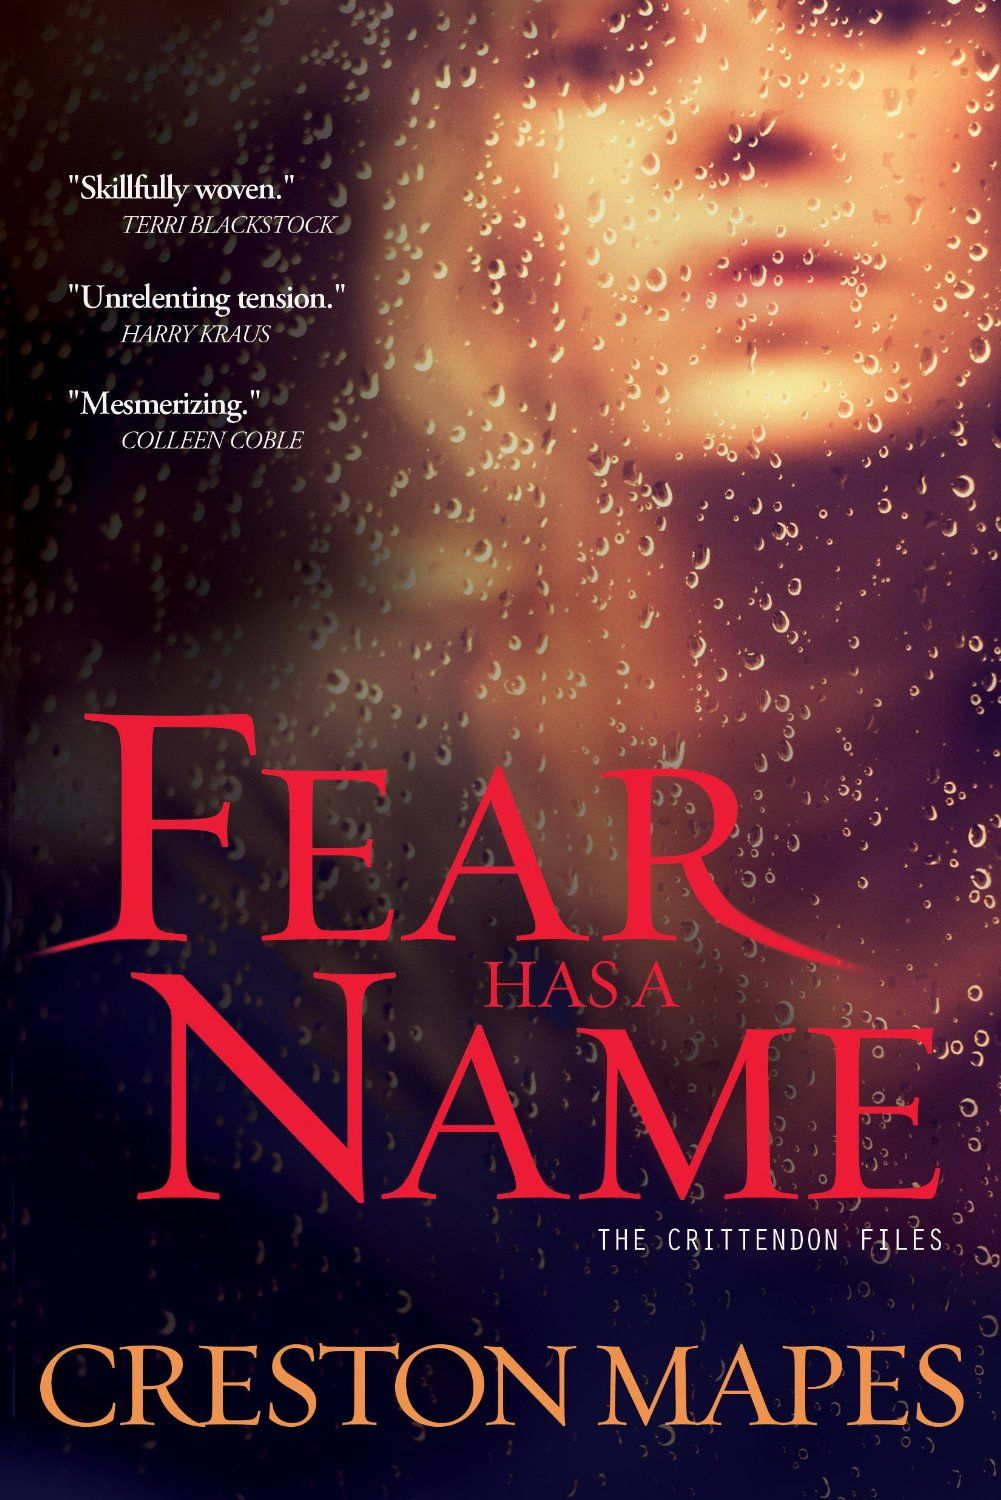 Amazon.com: Fear Has a Name: A Novel (The Crittendon Files) eBook: Creston Mapes: Kindle Store